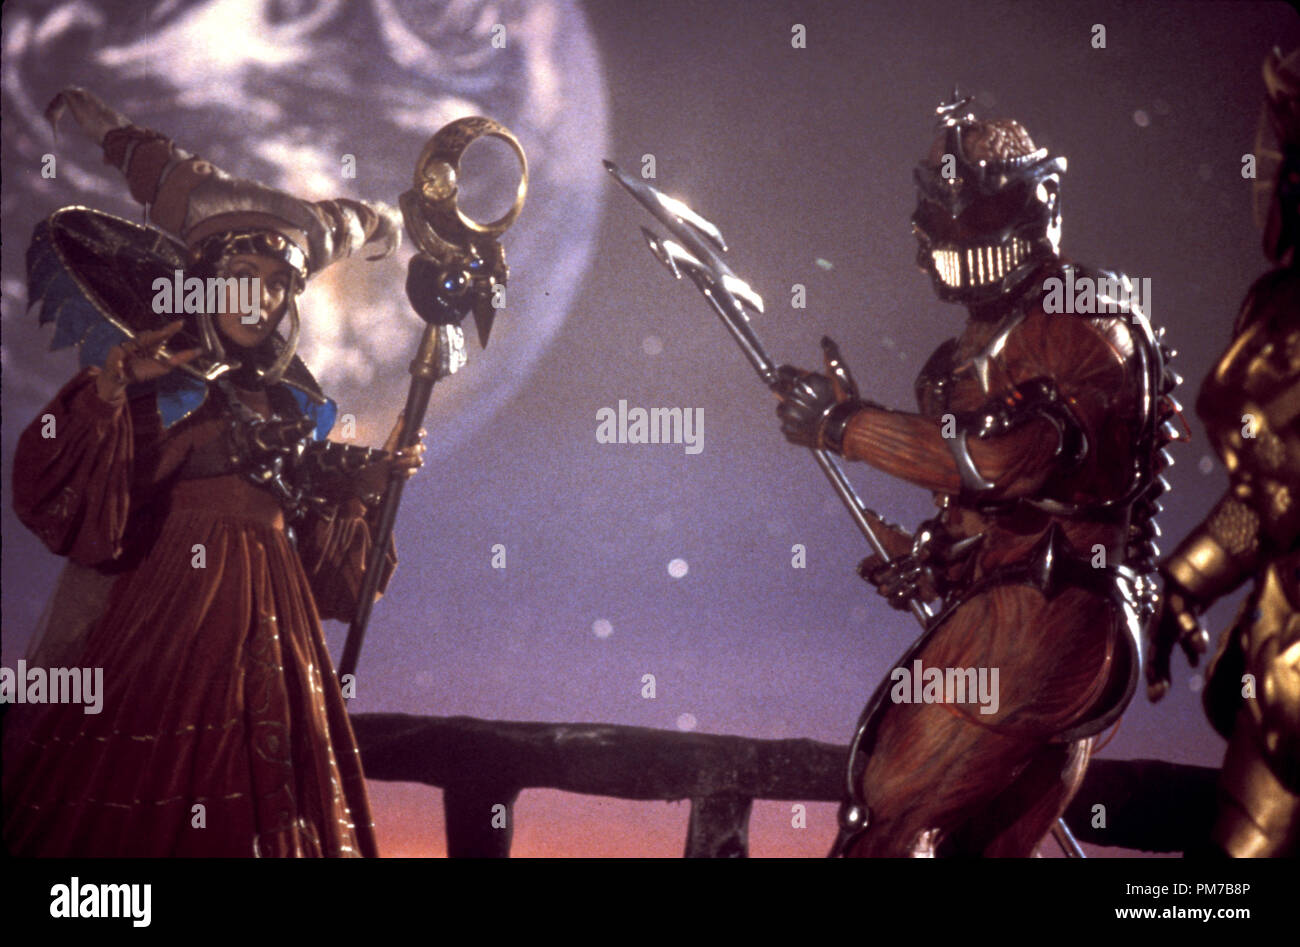 Film Still from 'Mighty Morphin Power Rangers: The Movie' Julia Cortez, Mark Ginther © 1995 20th Century Fox Photo Credit: Marc Vignes  File Reference # 31043213THA  For Editorial Use Only - All Rights Reserved - Stock Image